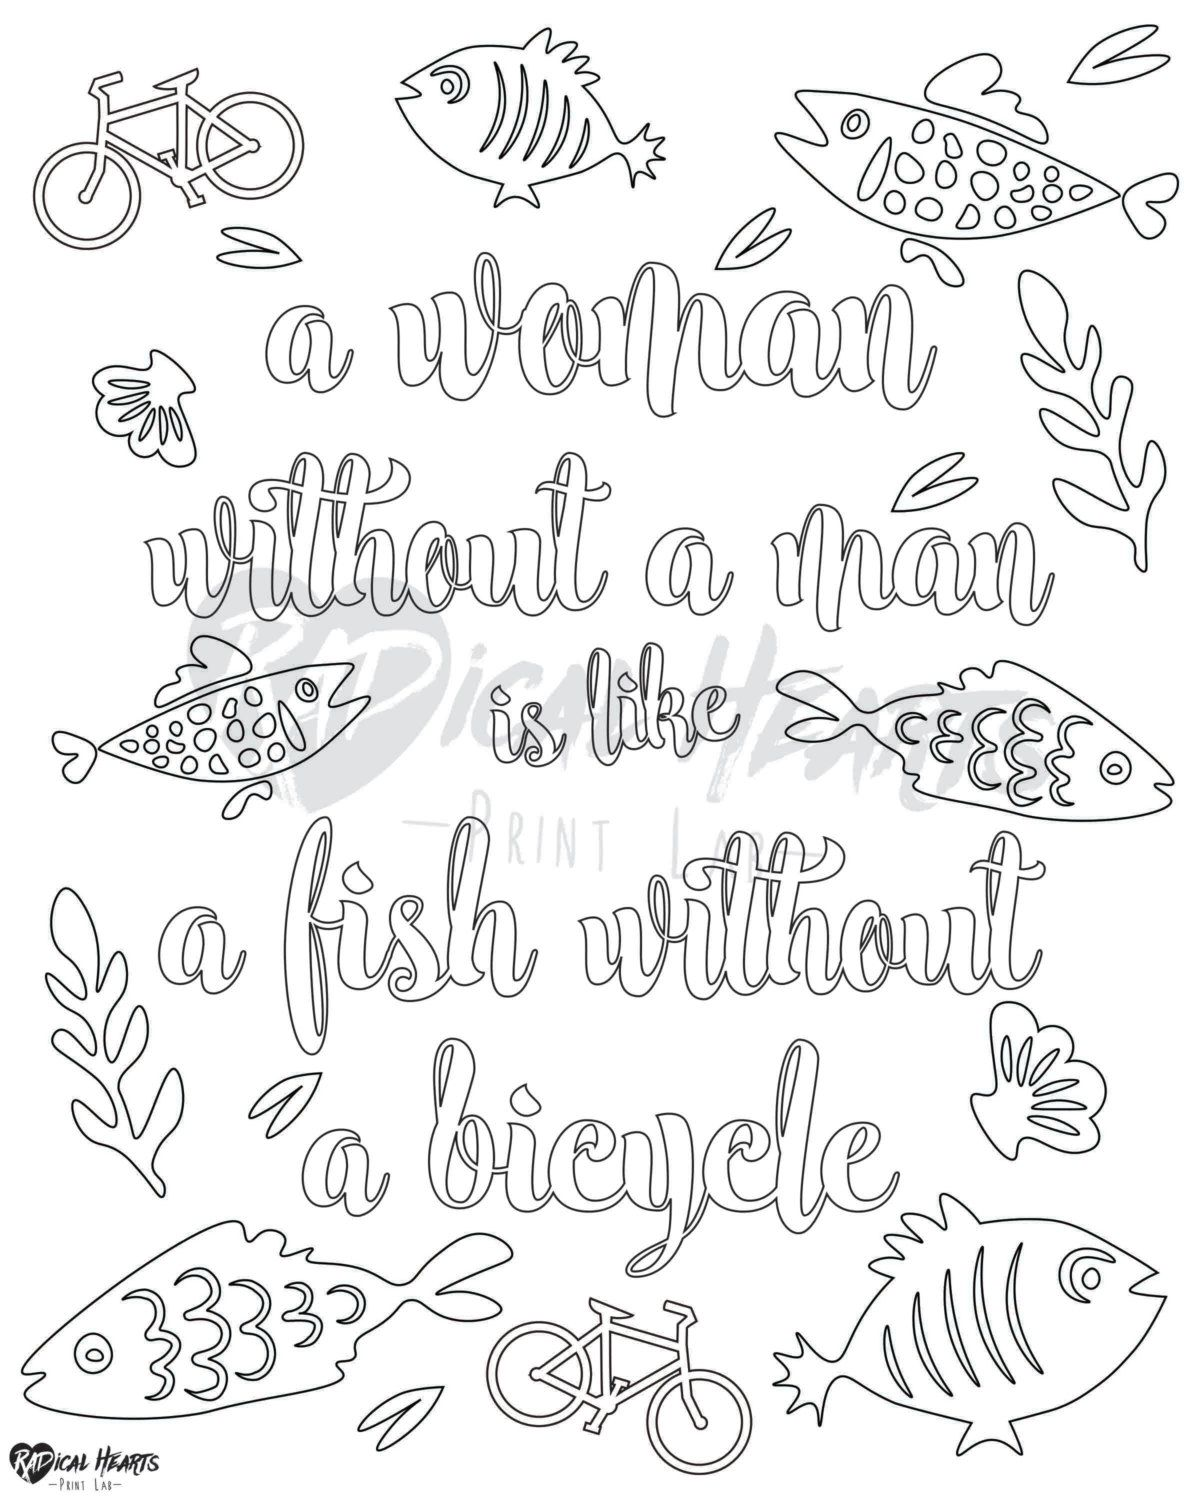 Feminist printable coloring page quirky by radheartsprintlab quirky quotes printable coloring pages sociology